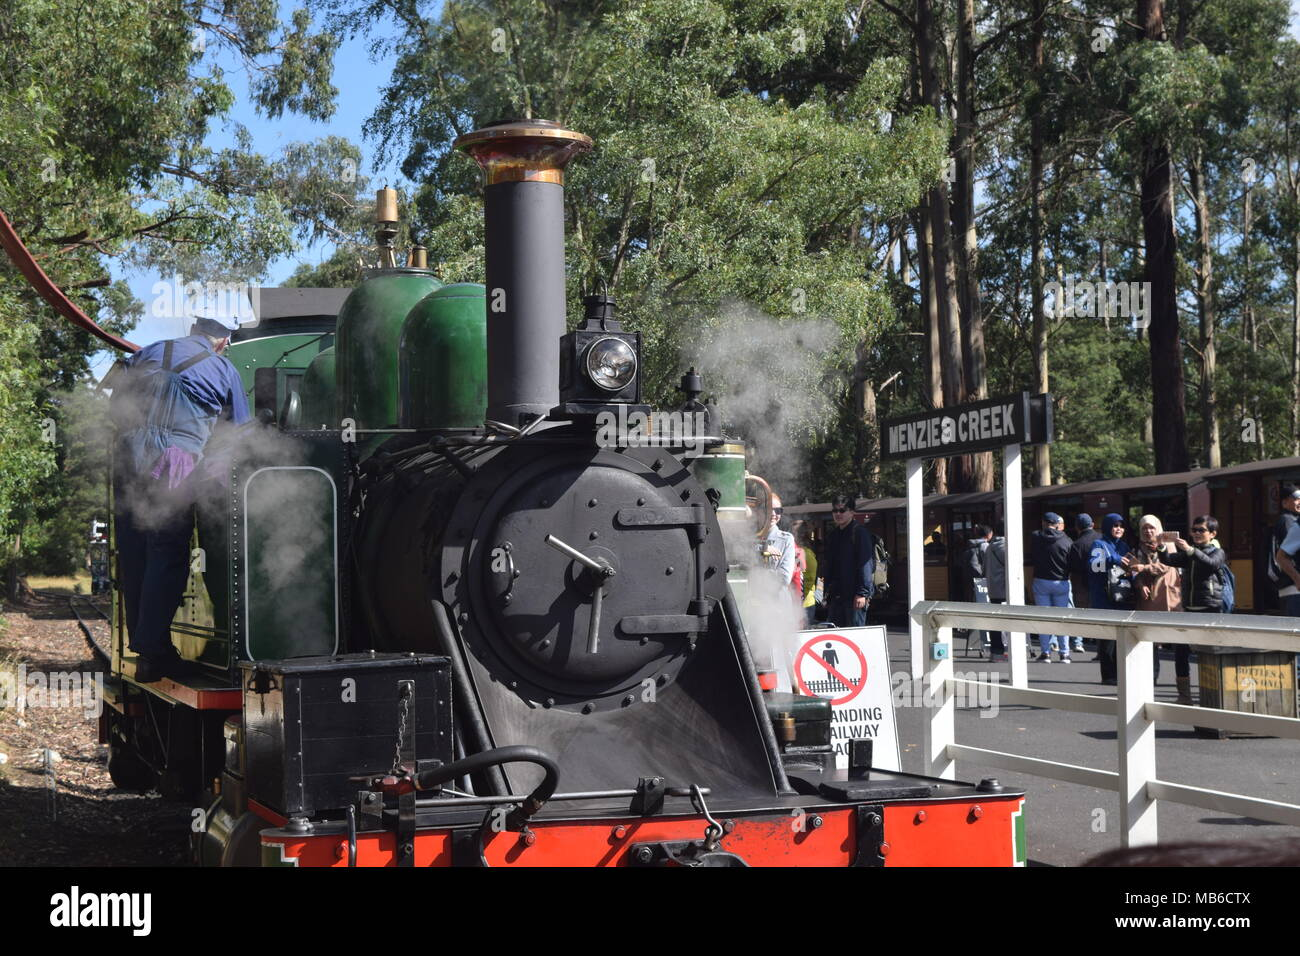 Puffing Billy Railway - Stock Image